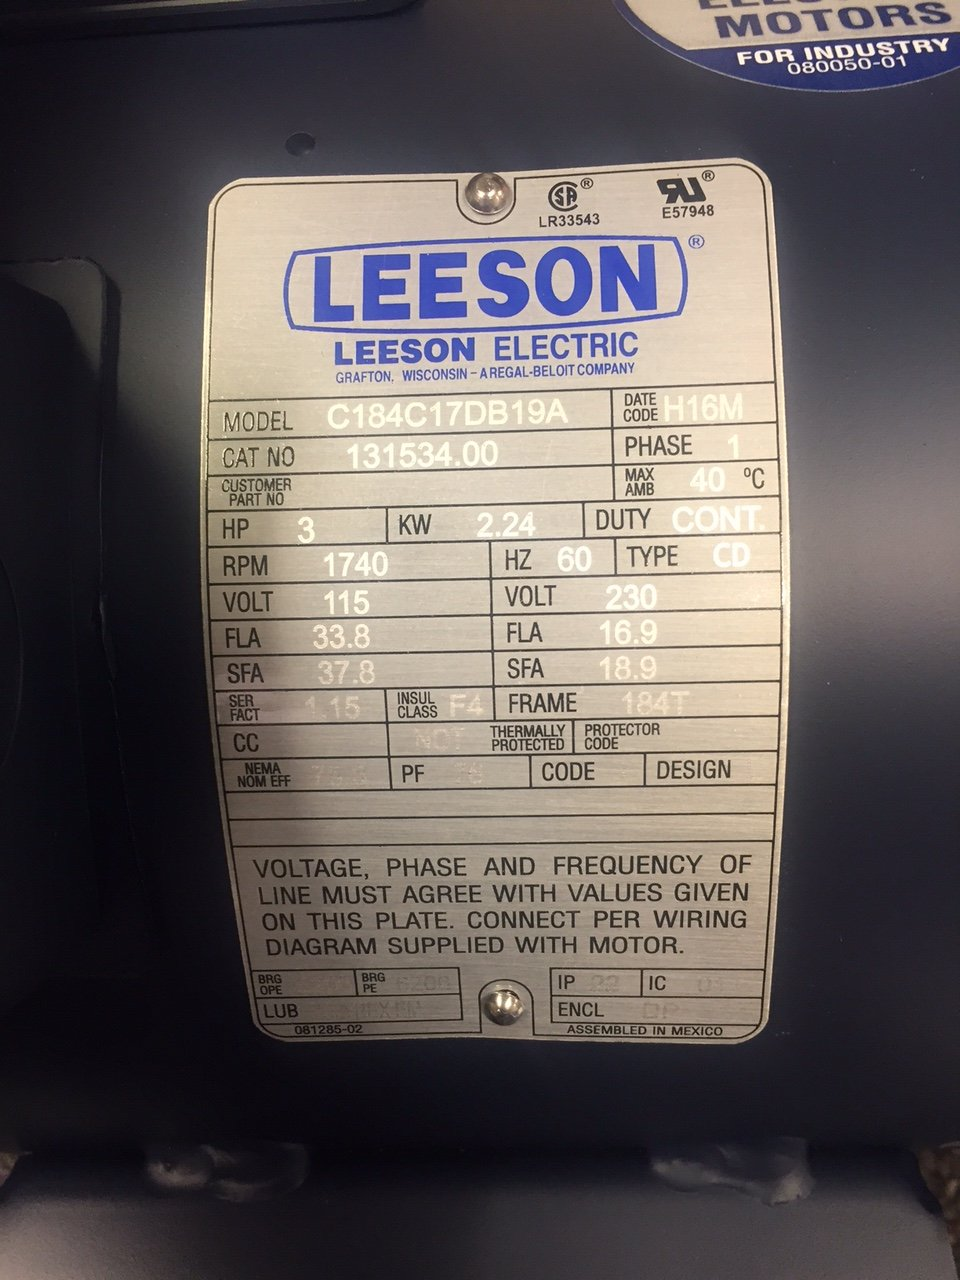 3hp 1725rpm 184t Frame 115208230 Volts Open Drip Leeson Electric. 3hp 1725rpm 184t Frame 115208230 Volts Open Drip Leeson Electric Motor 131534 Amazon Industrial Scientific. Wiring. 37 Hp Wisconsin Wiring Diagrams At Scoala.co